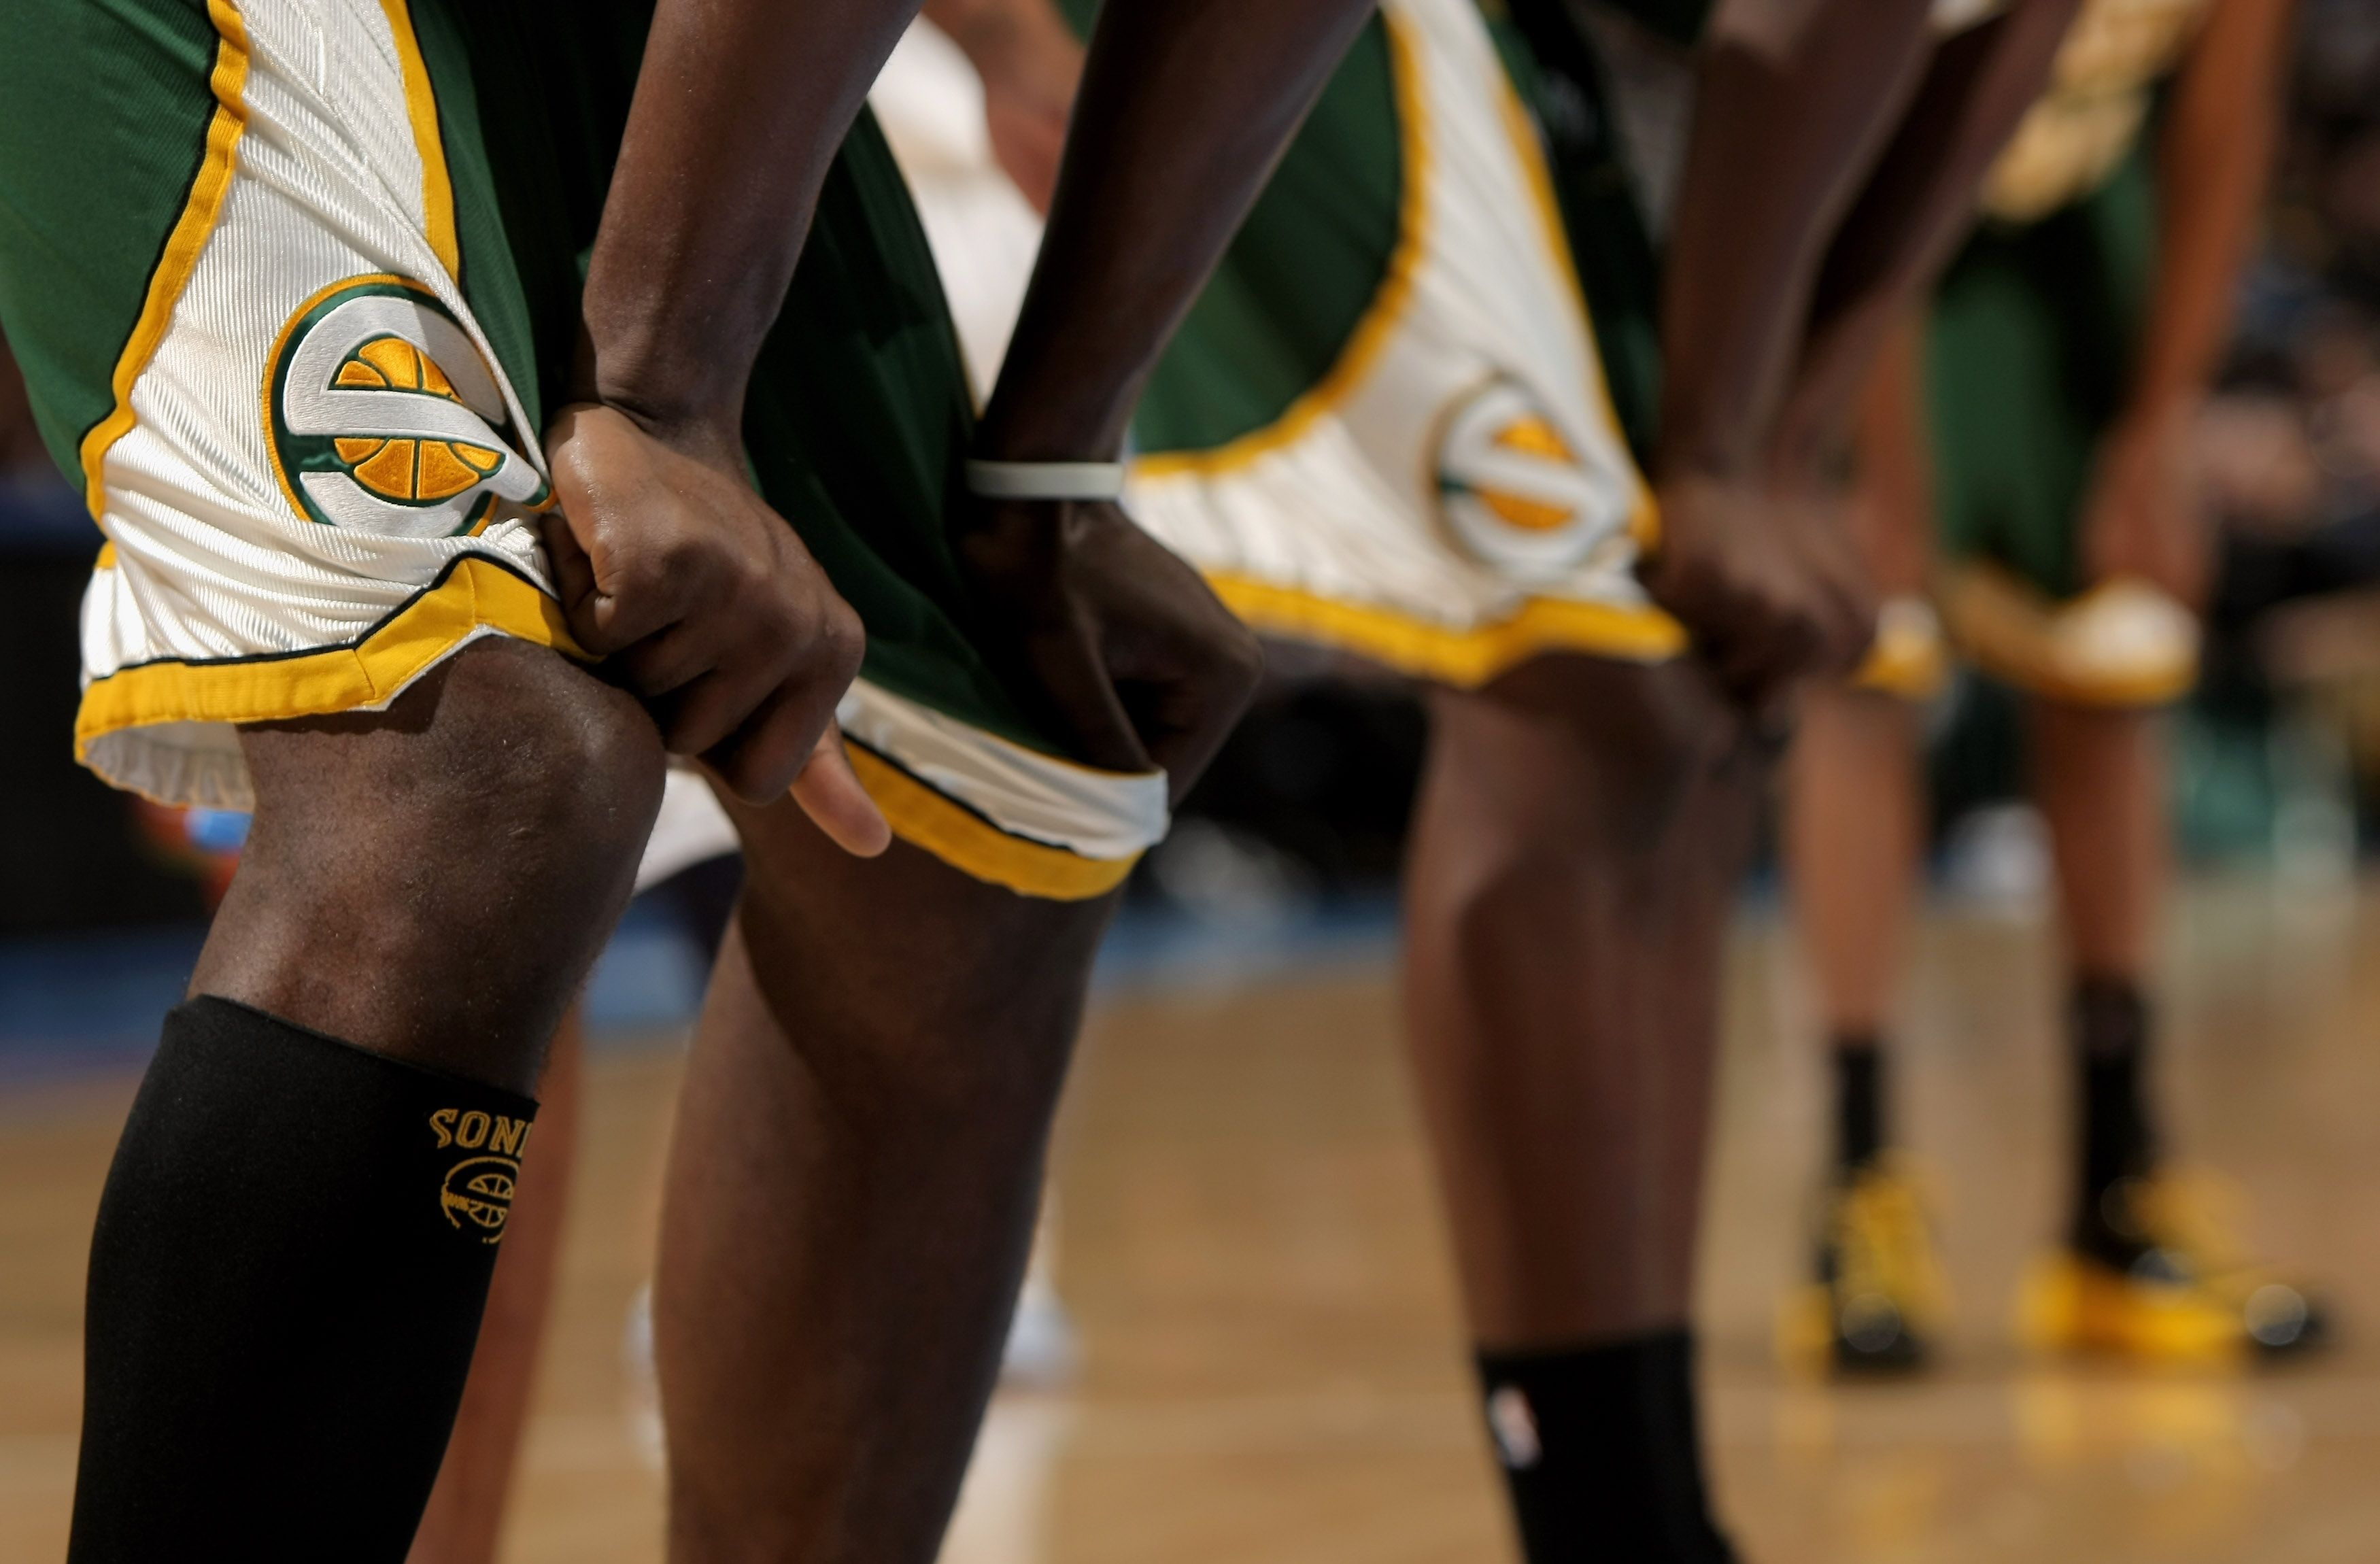 Members of the Seattle SuperSonics grabs their shorts as they are trounced by the Denver Nuggets at the Pepsi Center March 16, 2008 in Denver, Colorado.